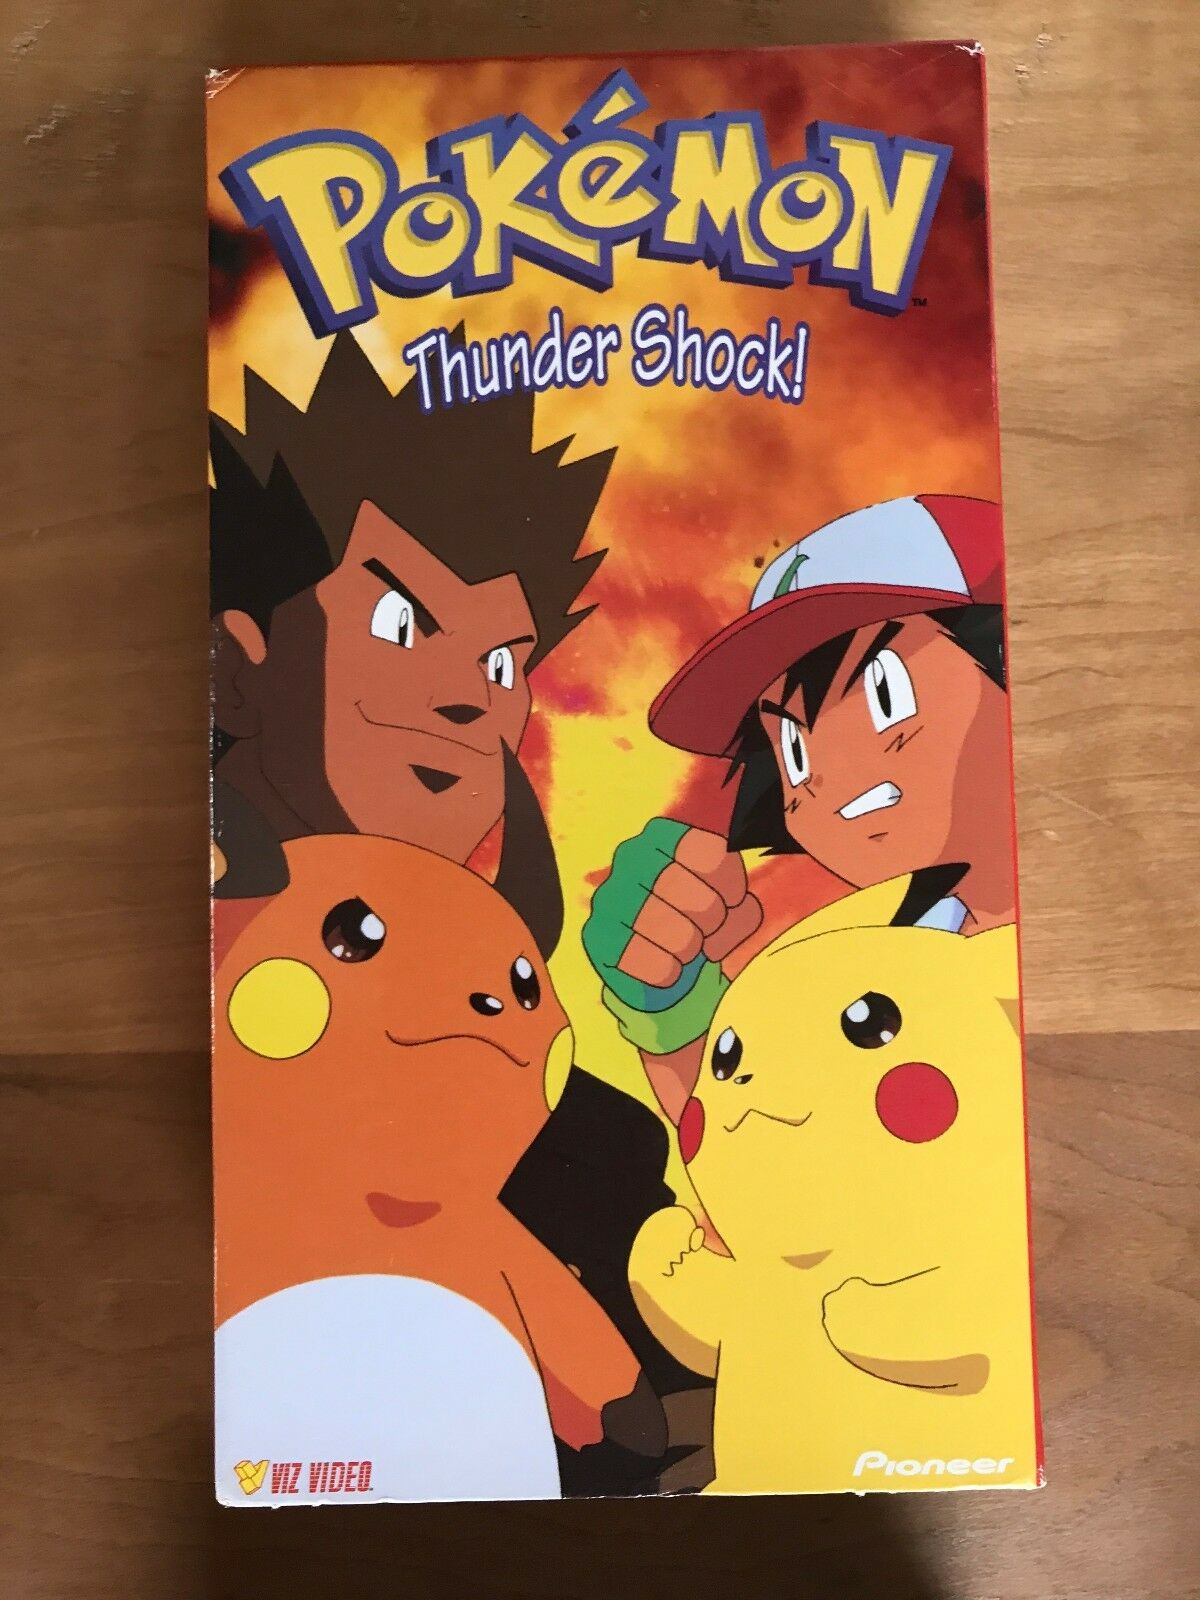 Pokemon Thunder Shock! (1999 VHS)